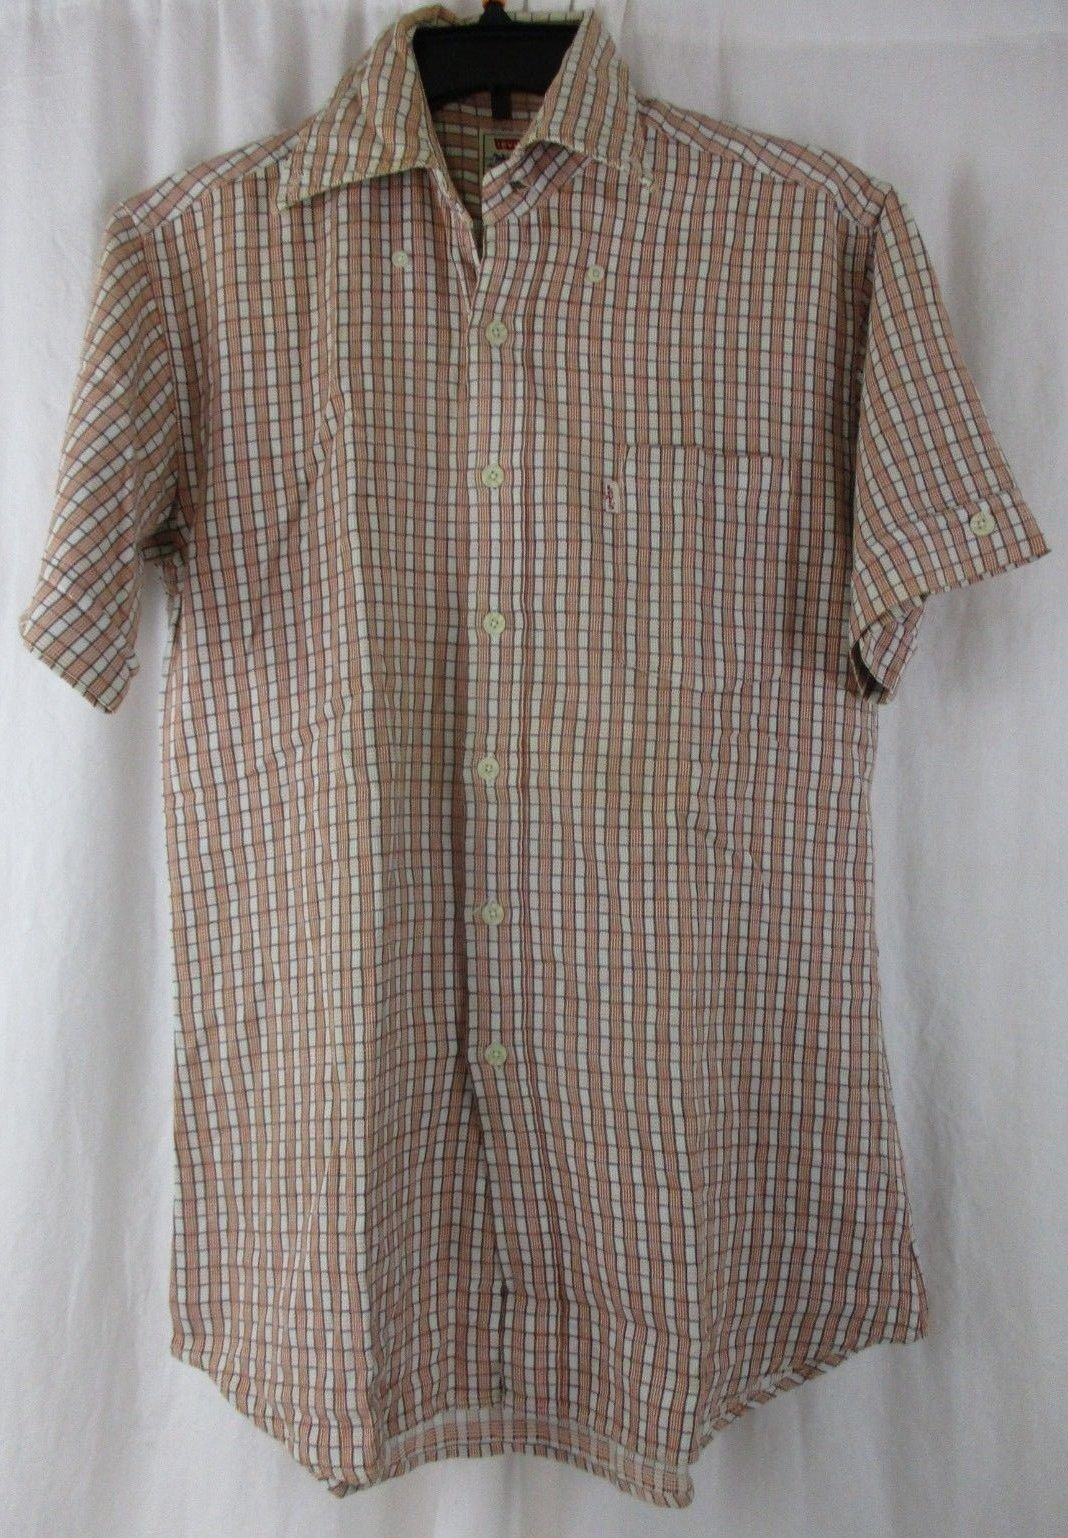 Primary image for Levi's Western Plaid Check Shirt Button Up Short Sleeves Men's Small